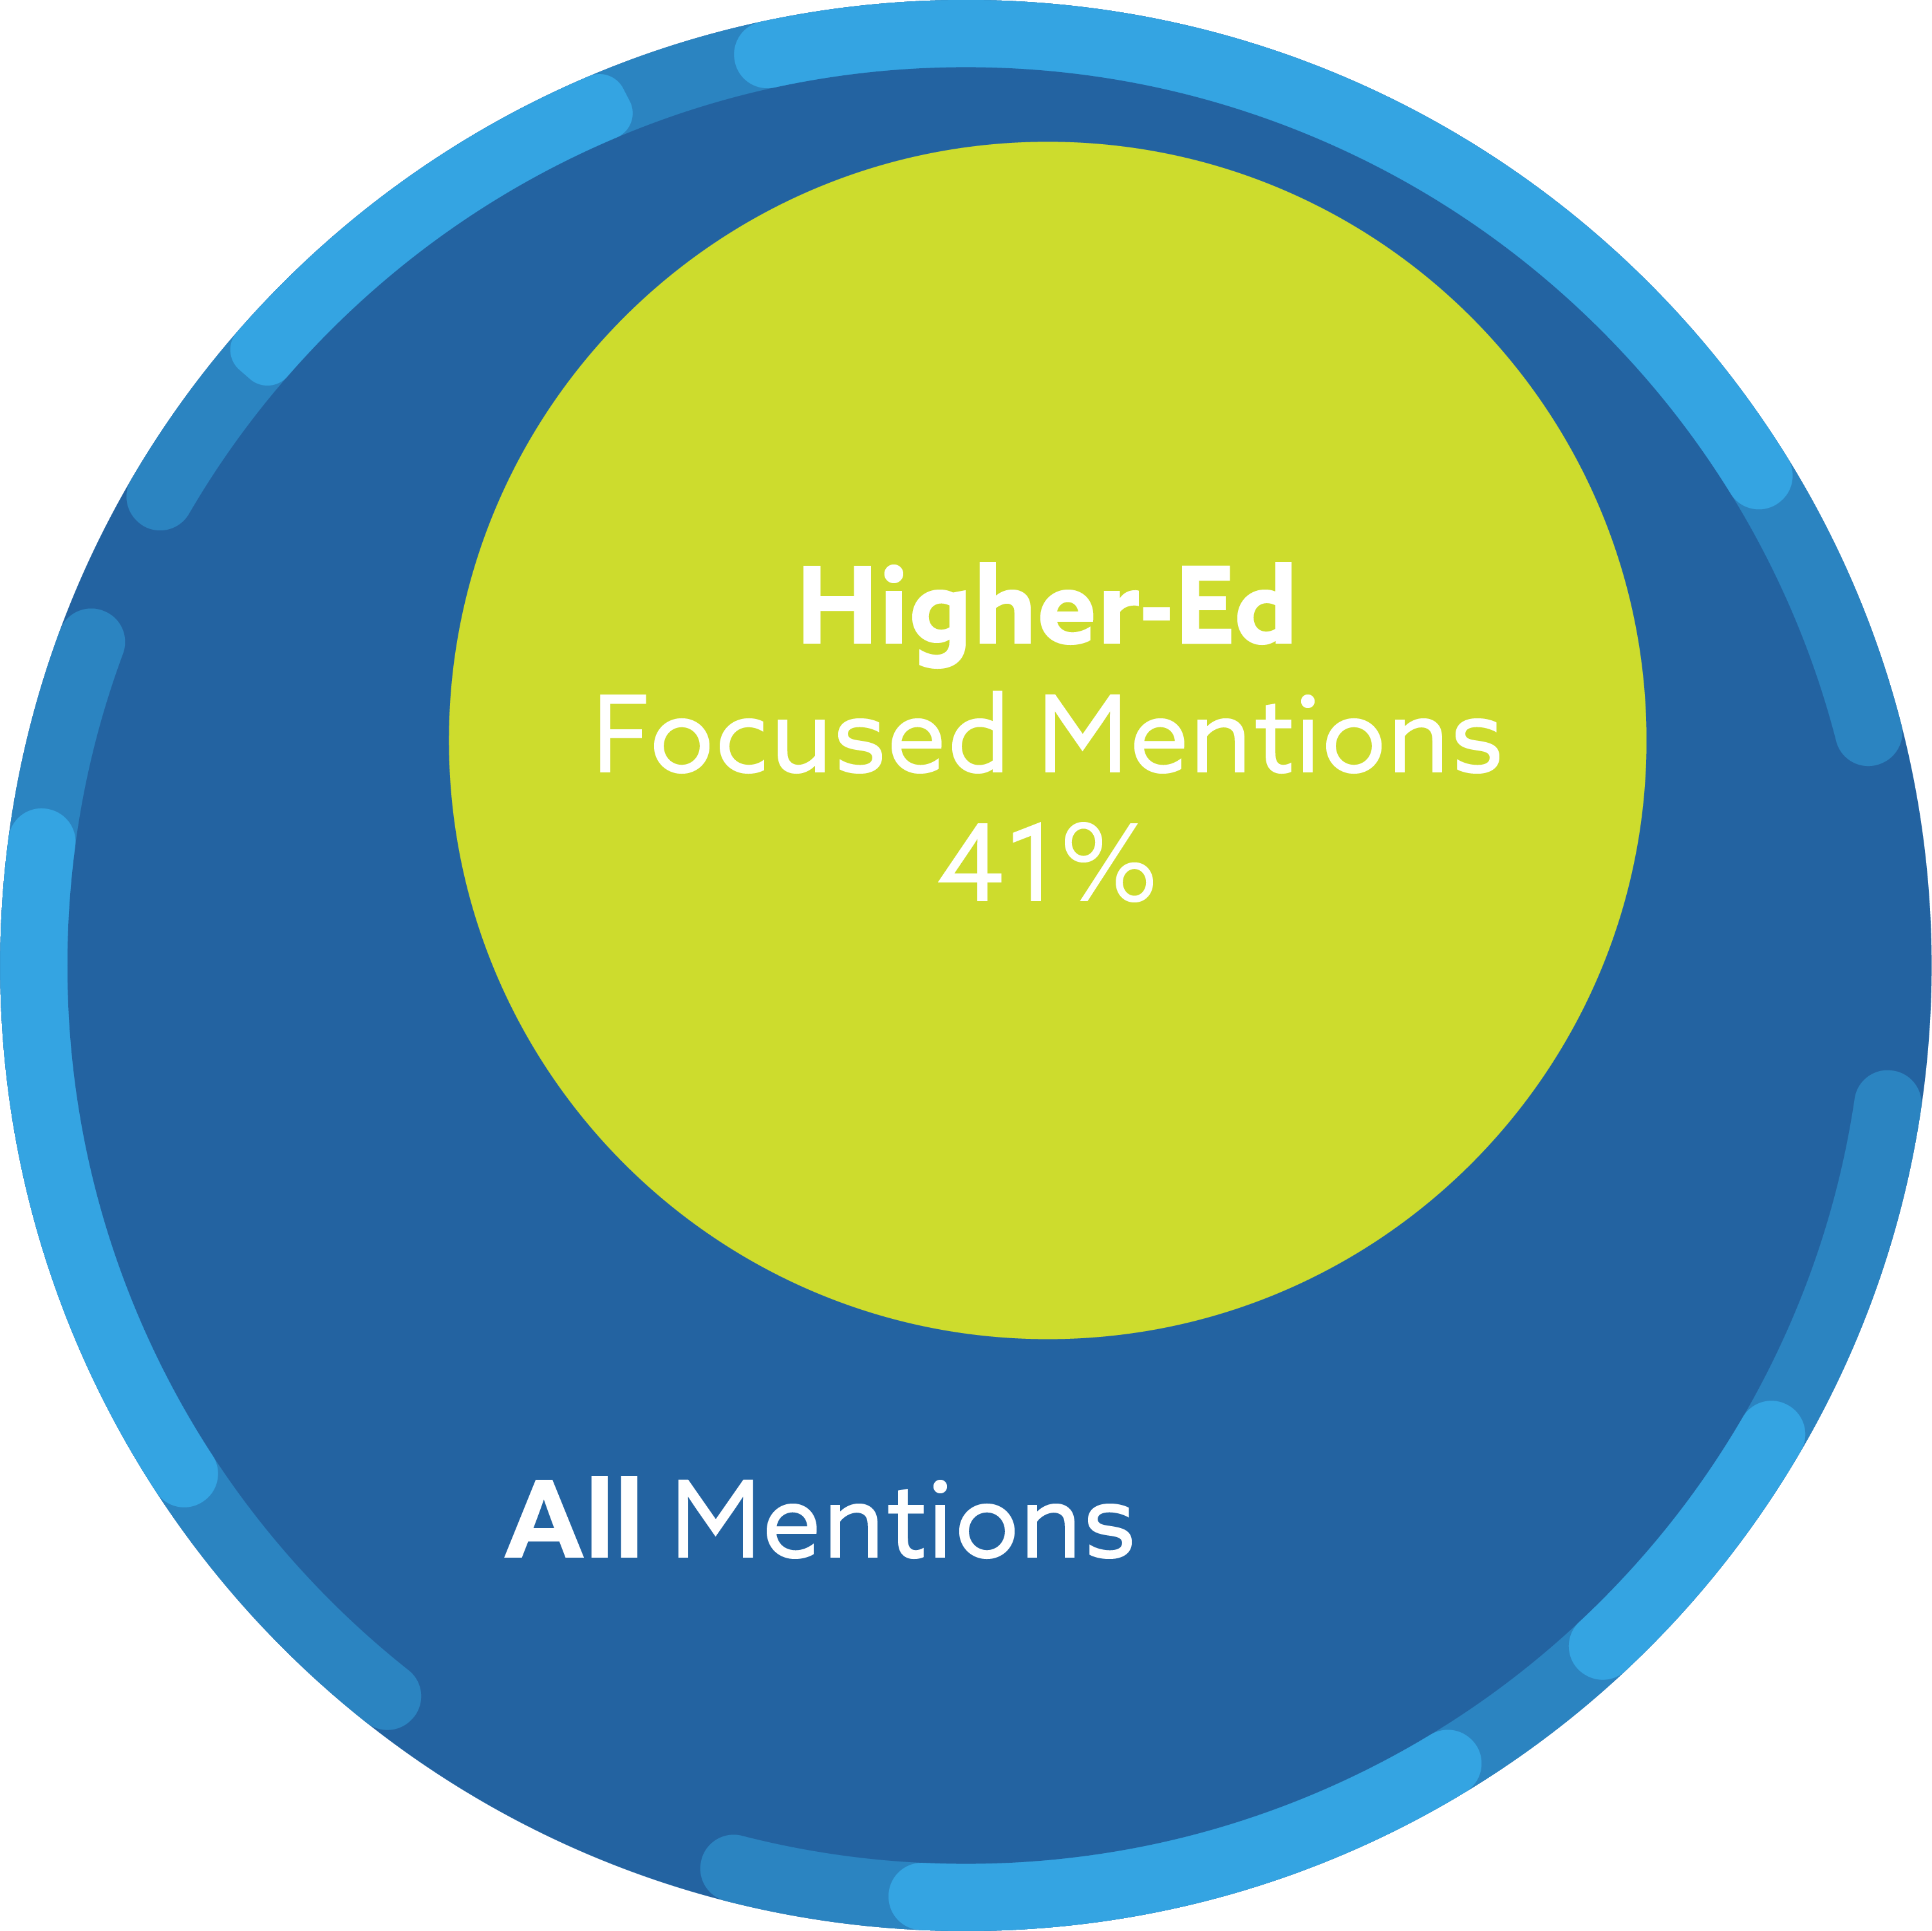 Of all mentions, 41% are higher-ed focused mentions